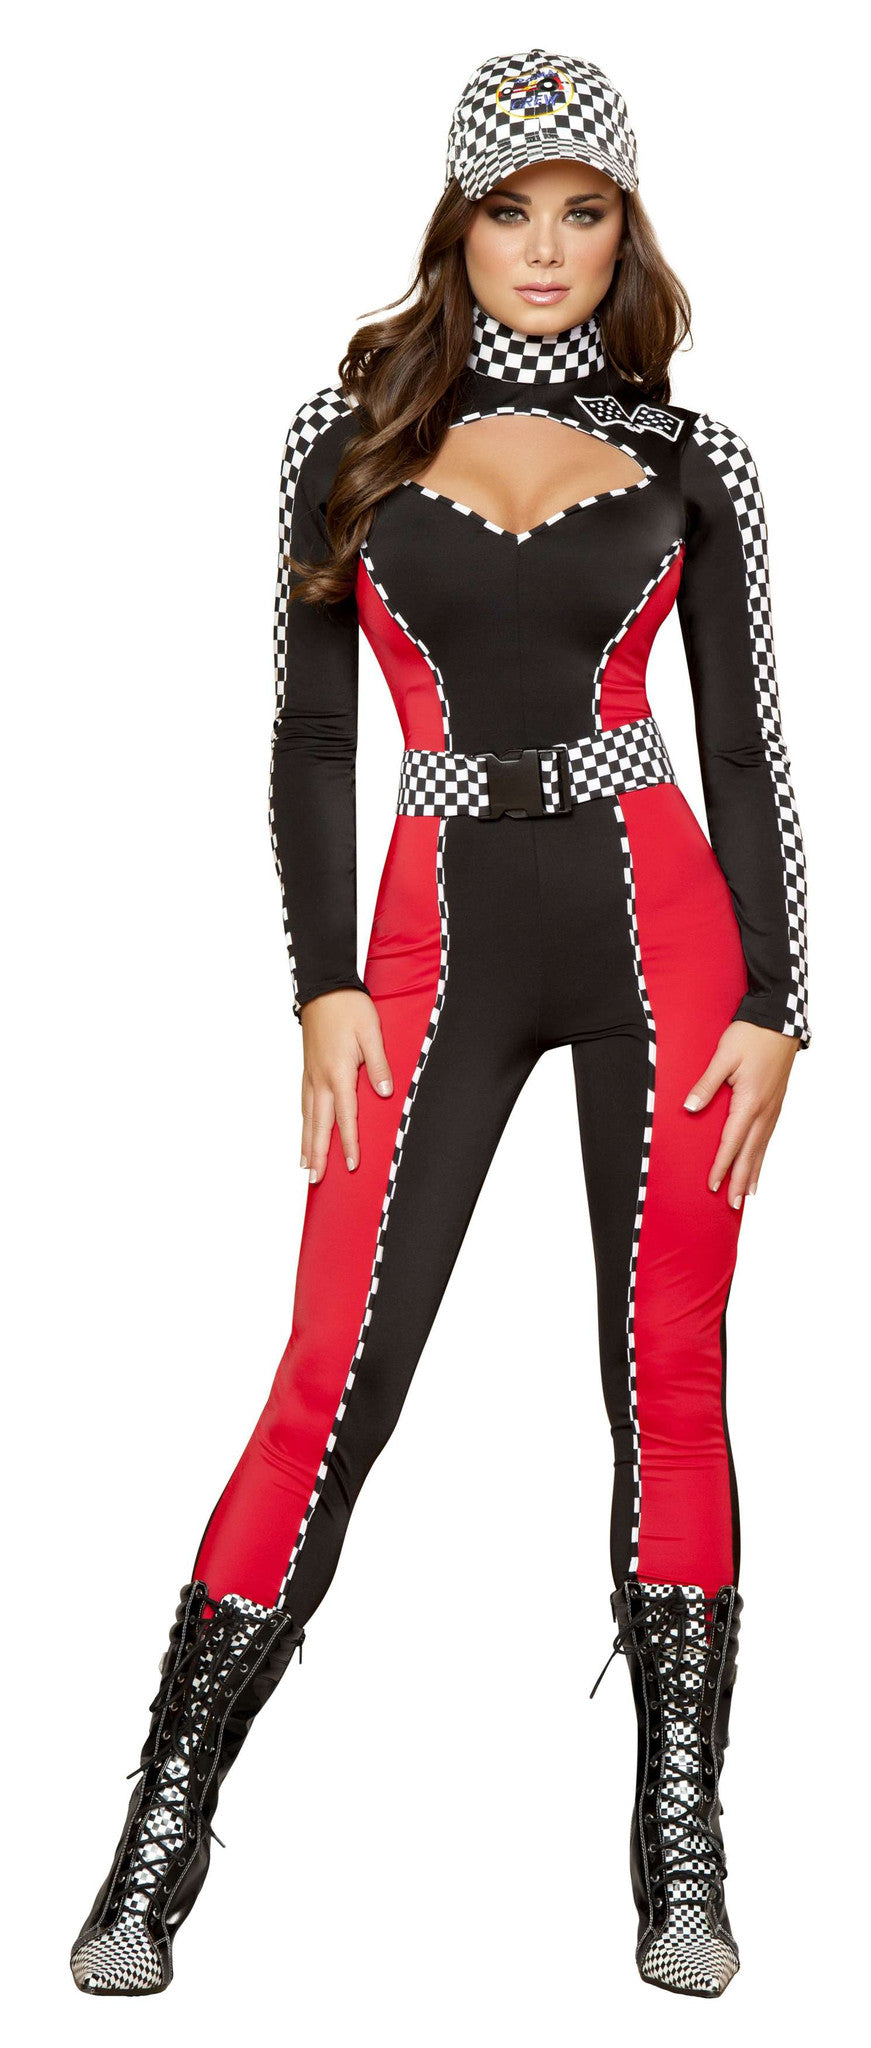 2pc Radiant Racer - Black/Red/White